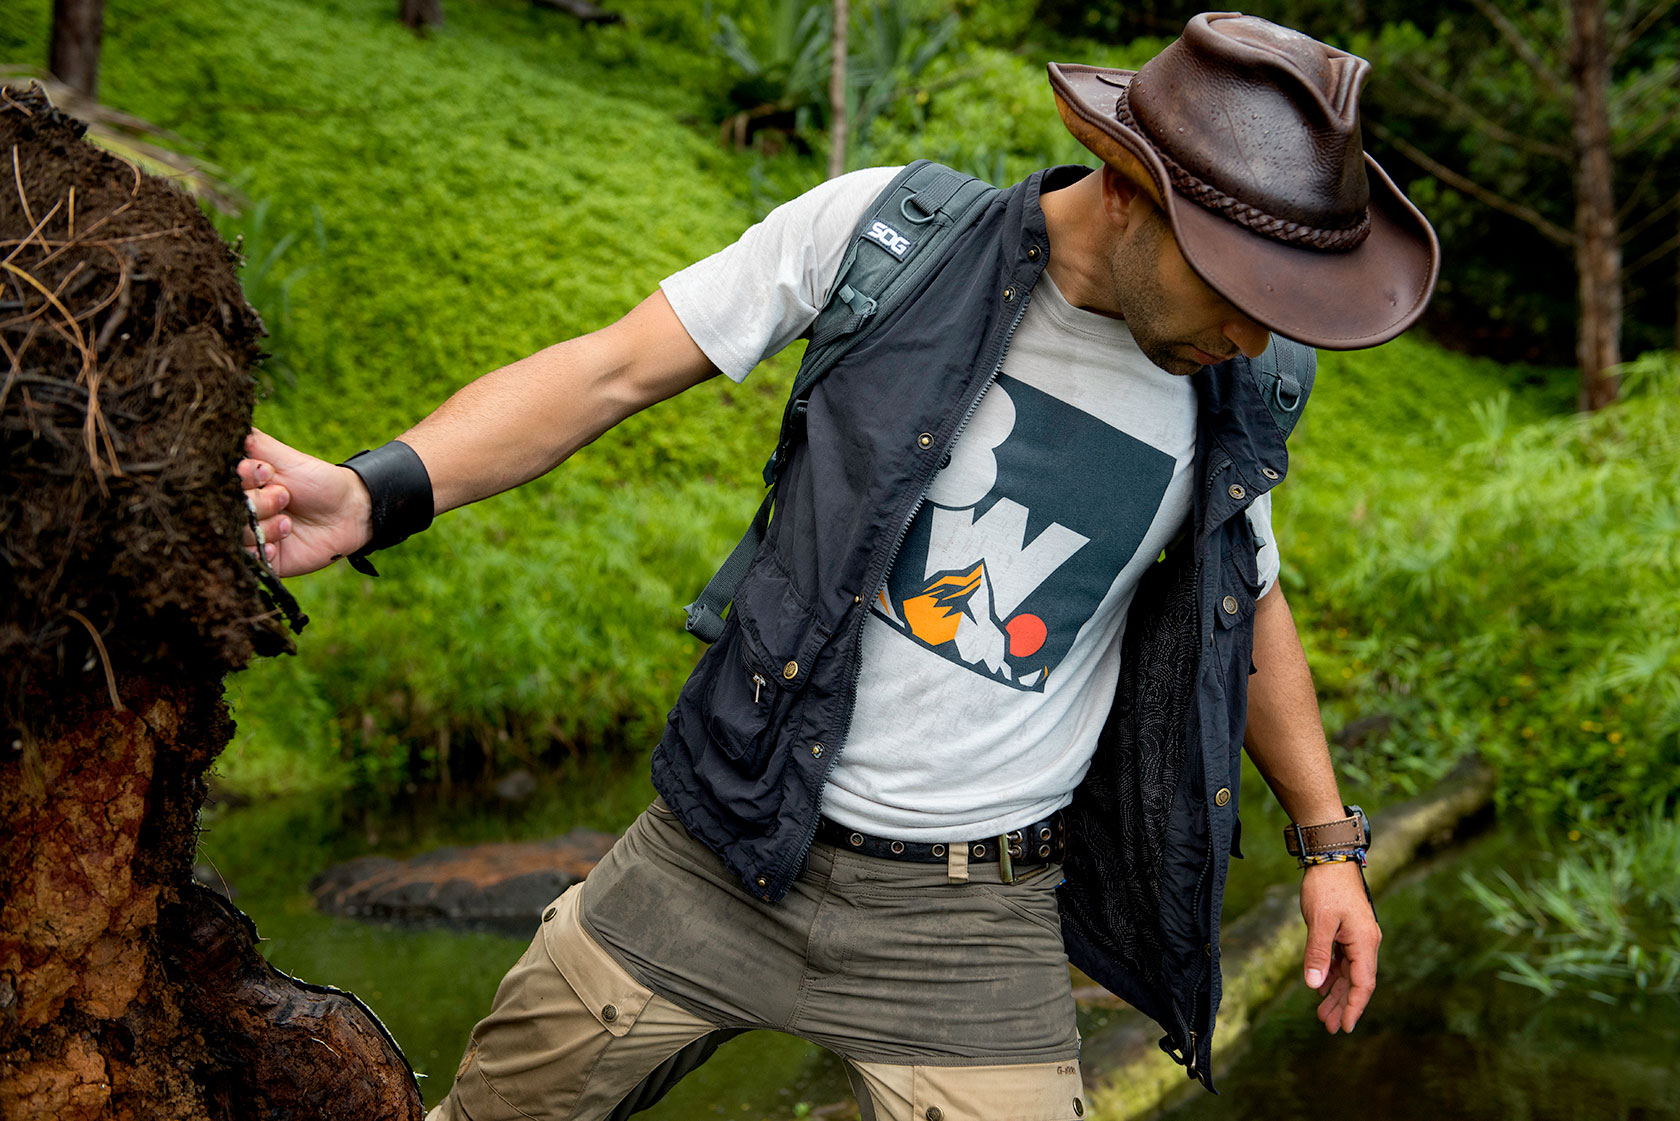 austin-trigg-brave-wilderness-kauai-hawaii-coyote-peterson-product.jpg